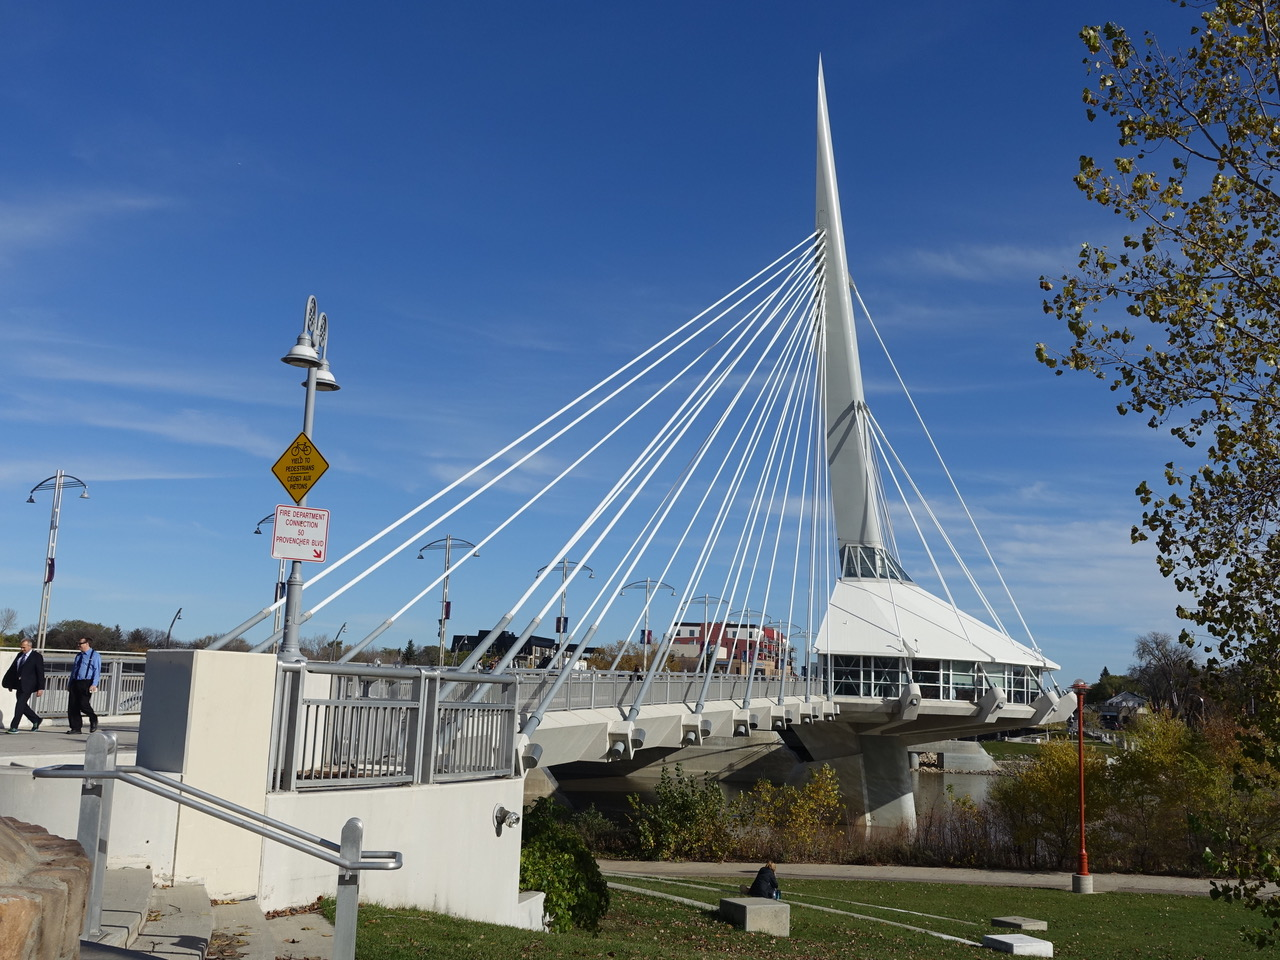 The Esplanade Riel Bridge connects The Forks to the community of St. Boniface across the Red River.  It has a restaurant in the middle that offers spectacular views of downtown, the river and the Human Rights Museum.